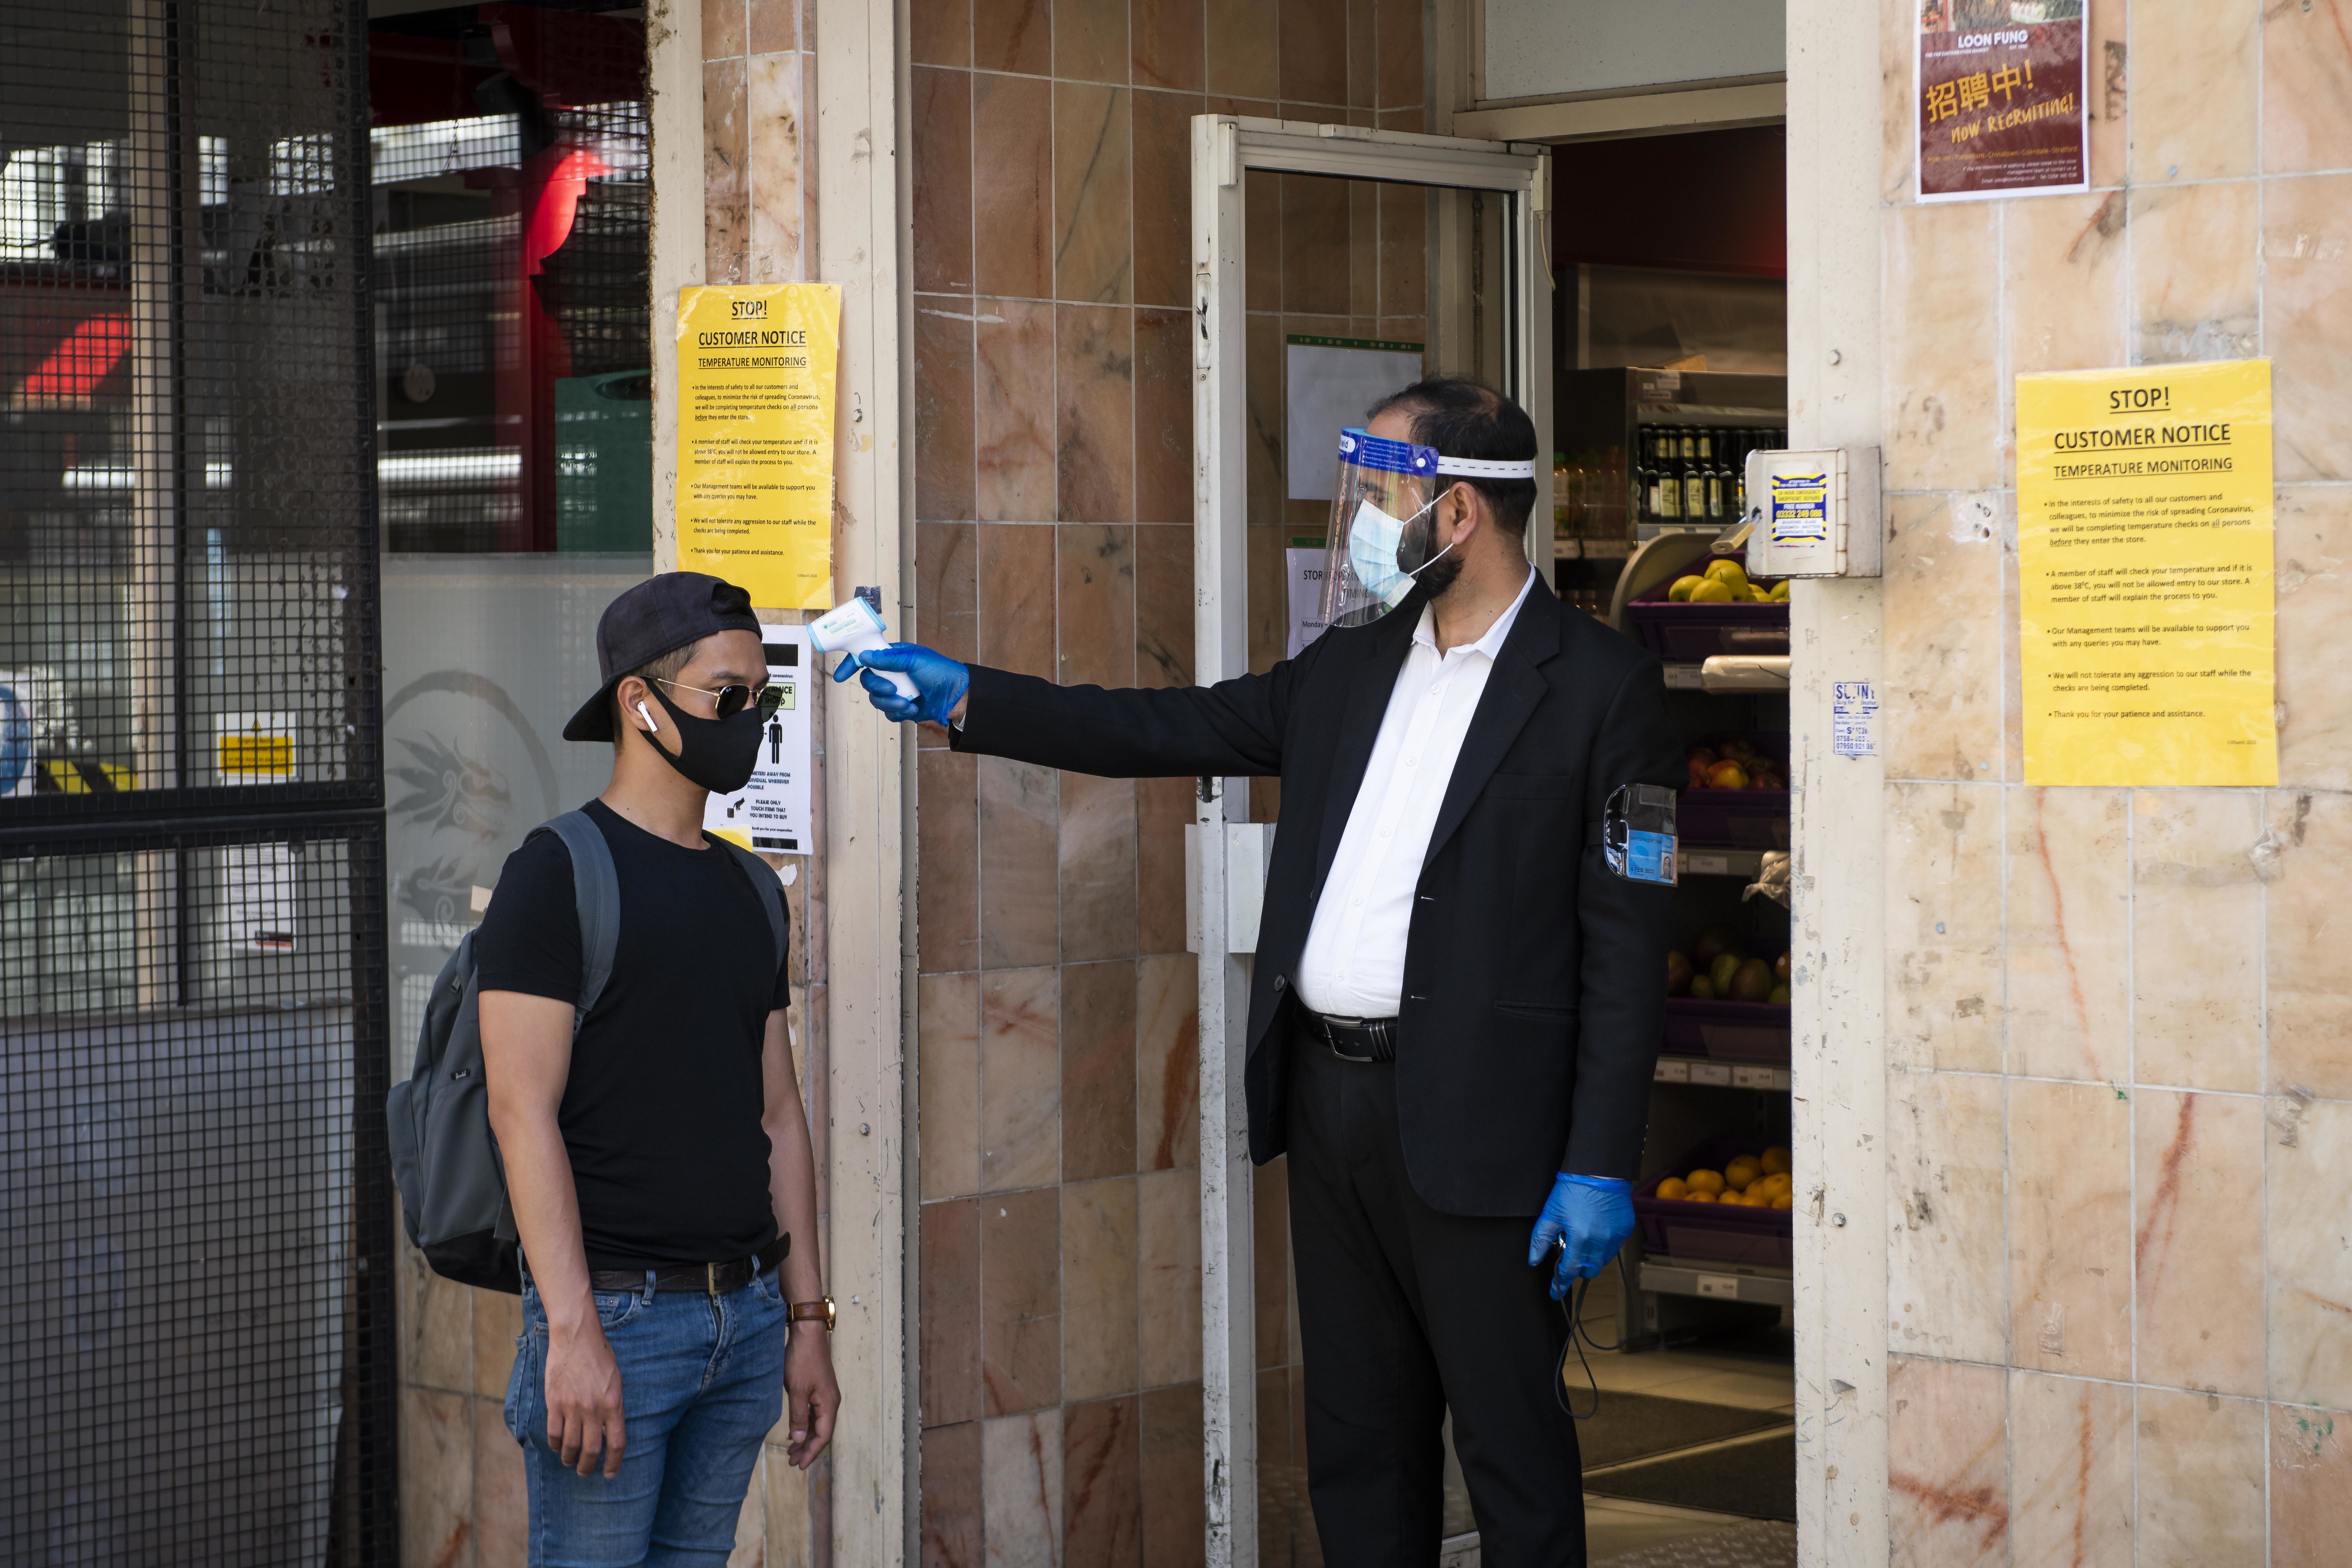 A security guard wearing a face shield and mask checks a customers temperature before he enters a supermarket, as the Coronavirus pandemic lockdown eases, Chinatown, London. Picture date: Friday 29th May 2020. Photo credit should read: David Jensen/EMPICS Entertainment